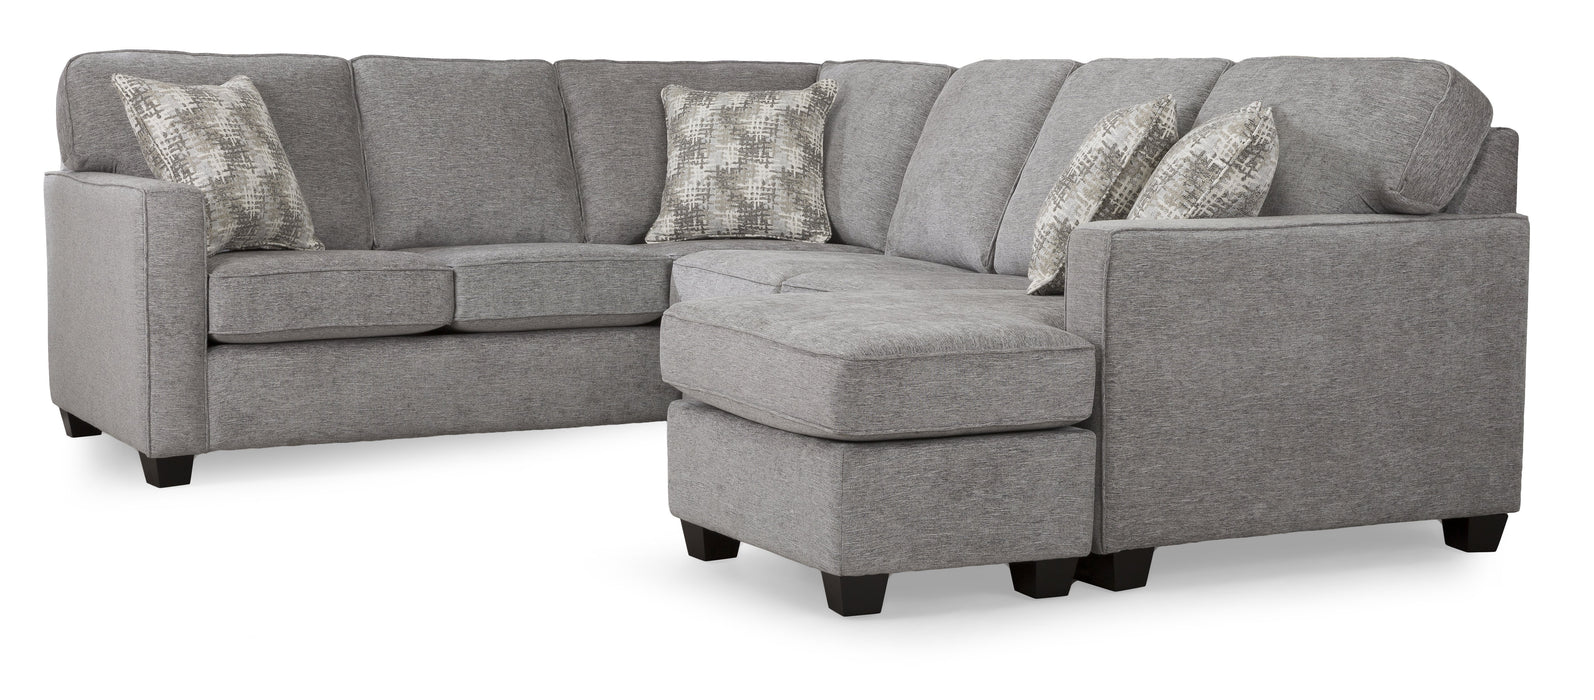 Decor-Rest 2541 Sectional - INSTOCK